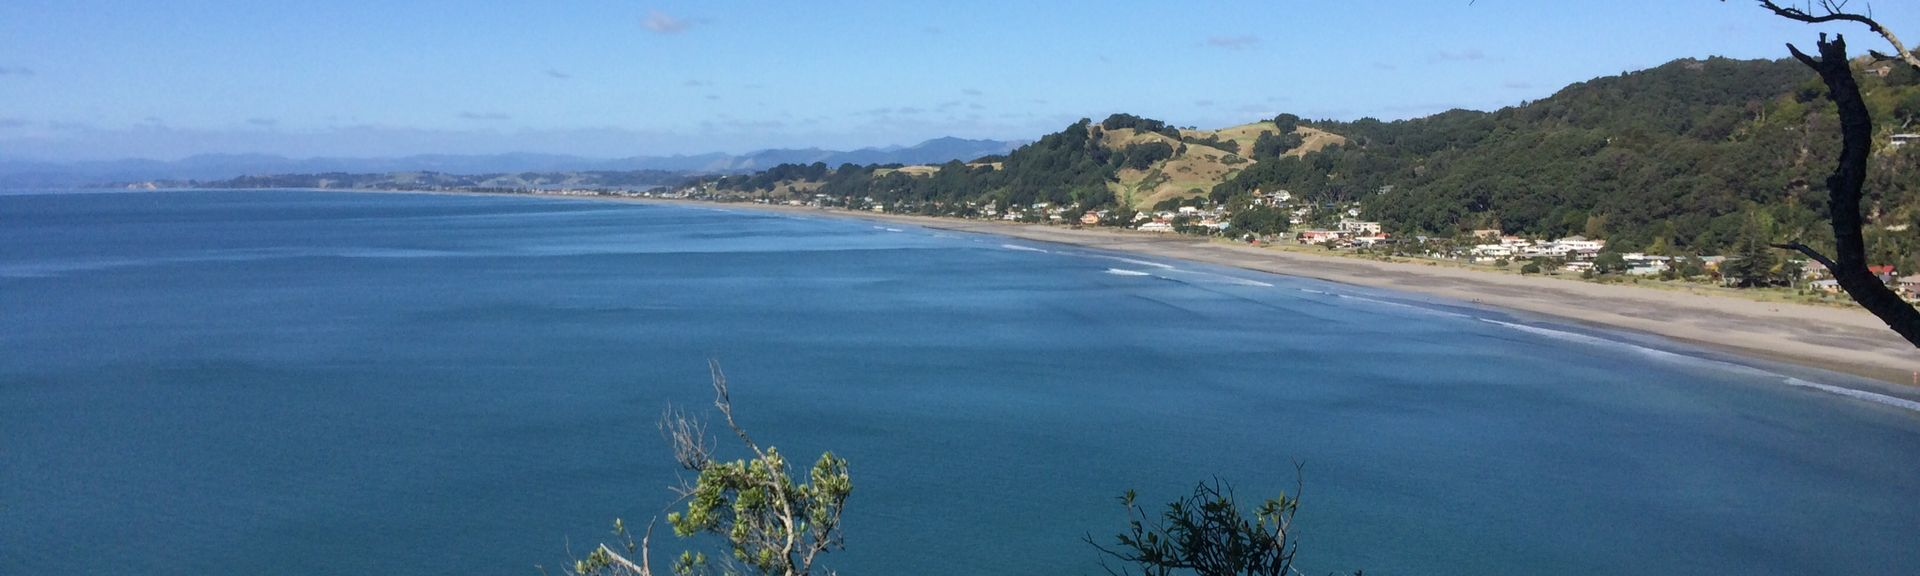 Ohope, Bay of Plenty, Neuseeland